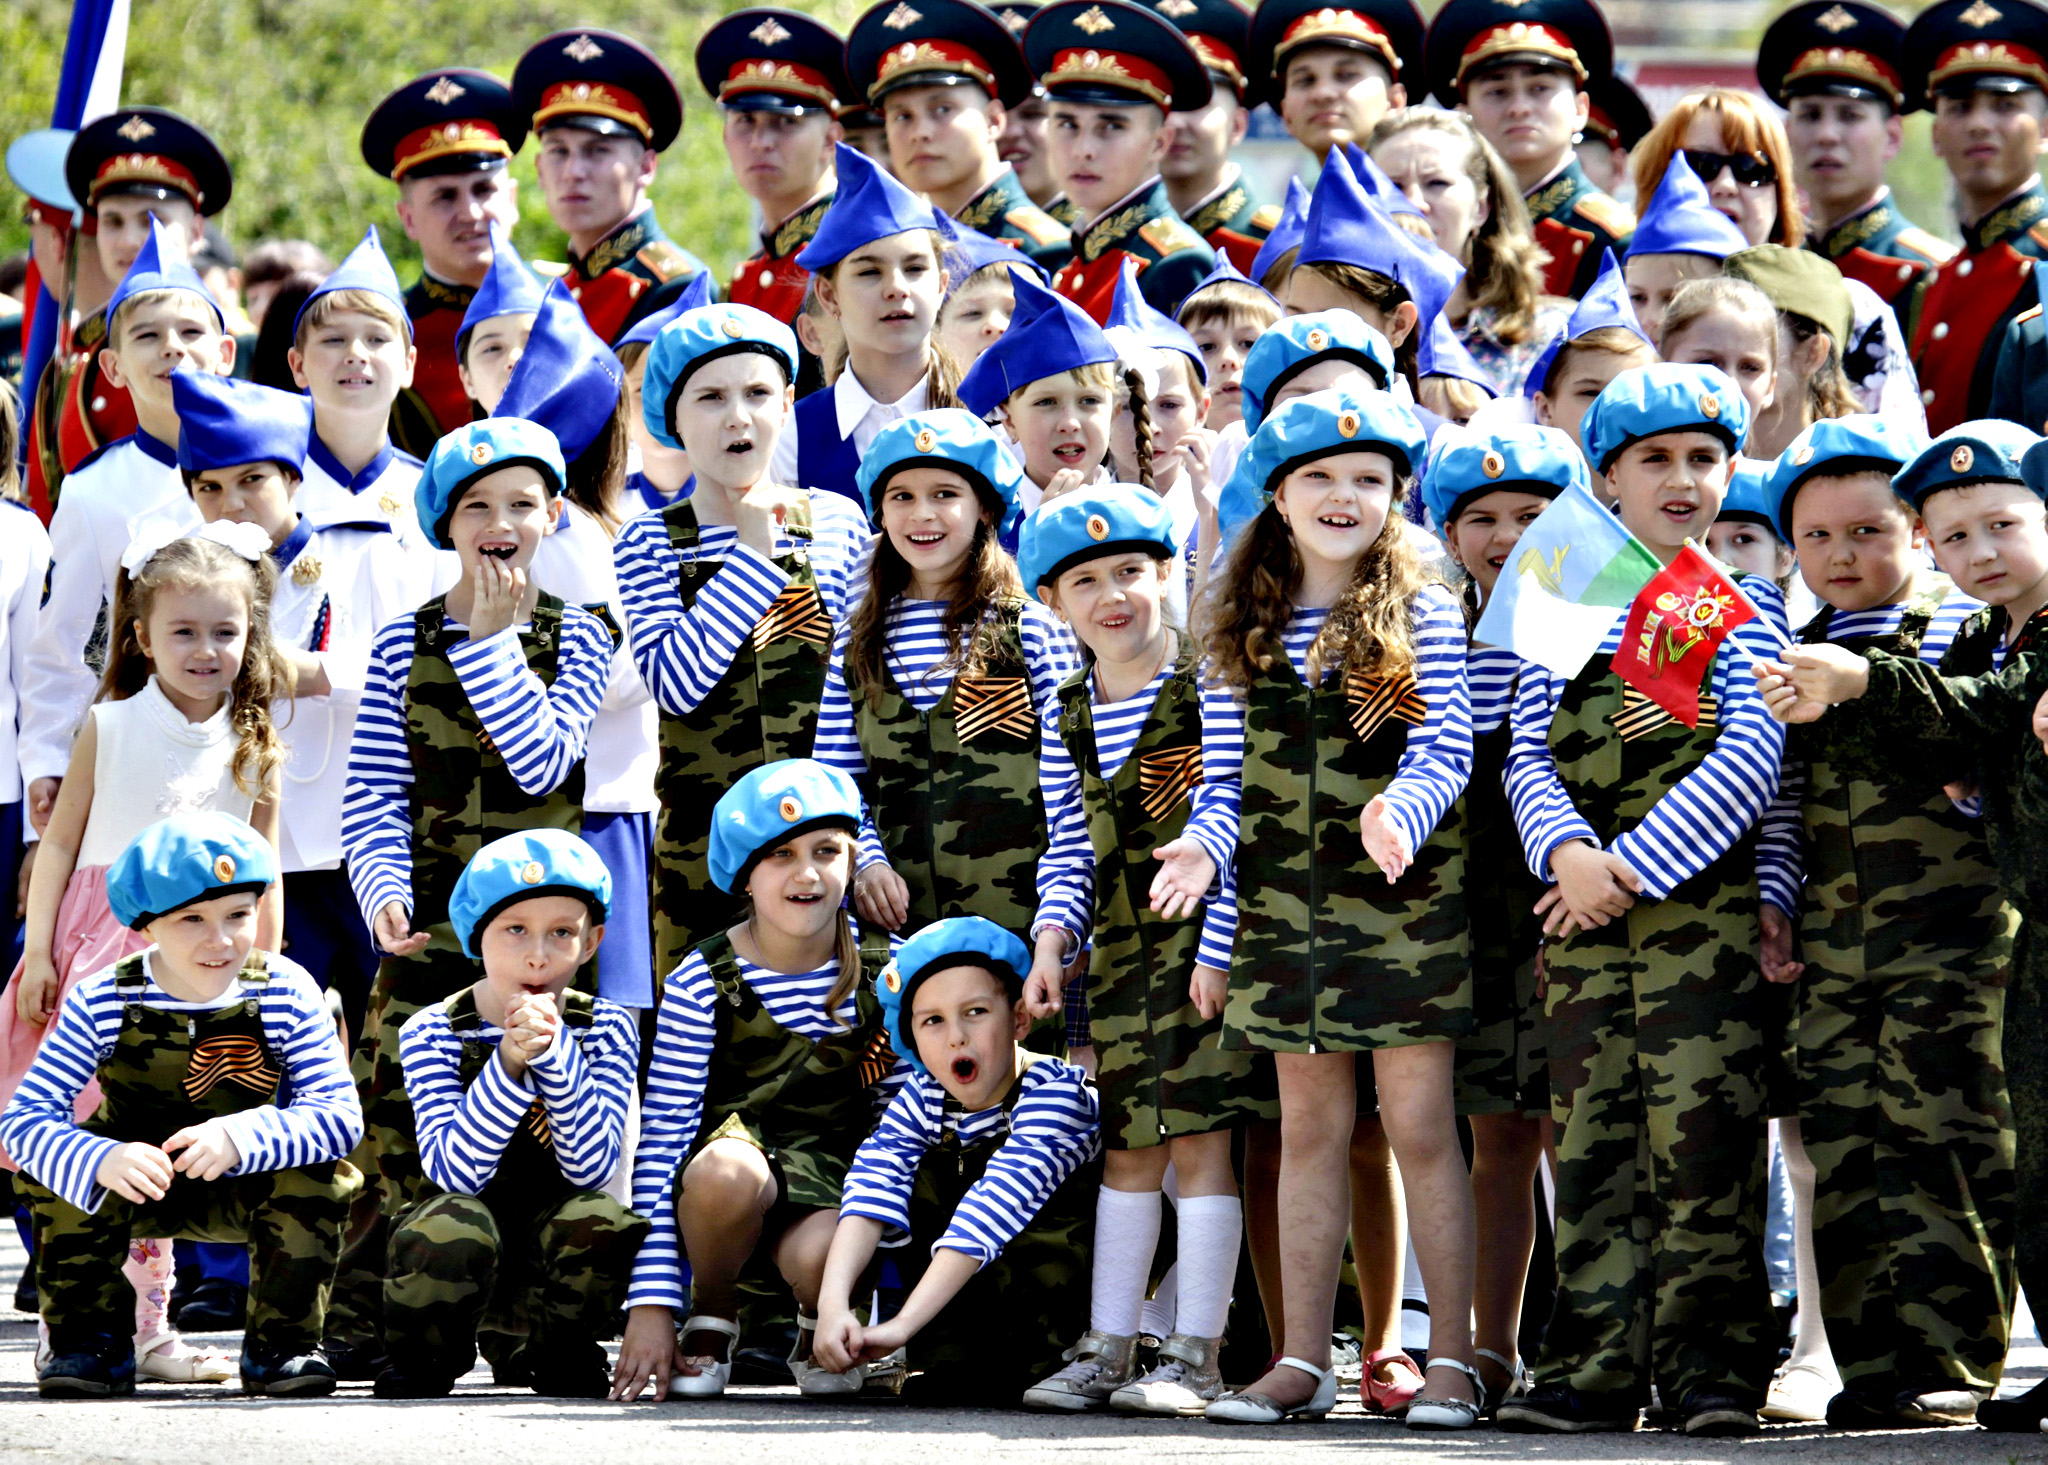 Children and honour guards watch a performance during the so-called parade of children's troops in Rostov-on-Don, southern Russia, on Thursday